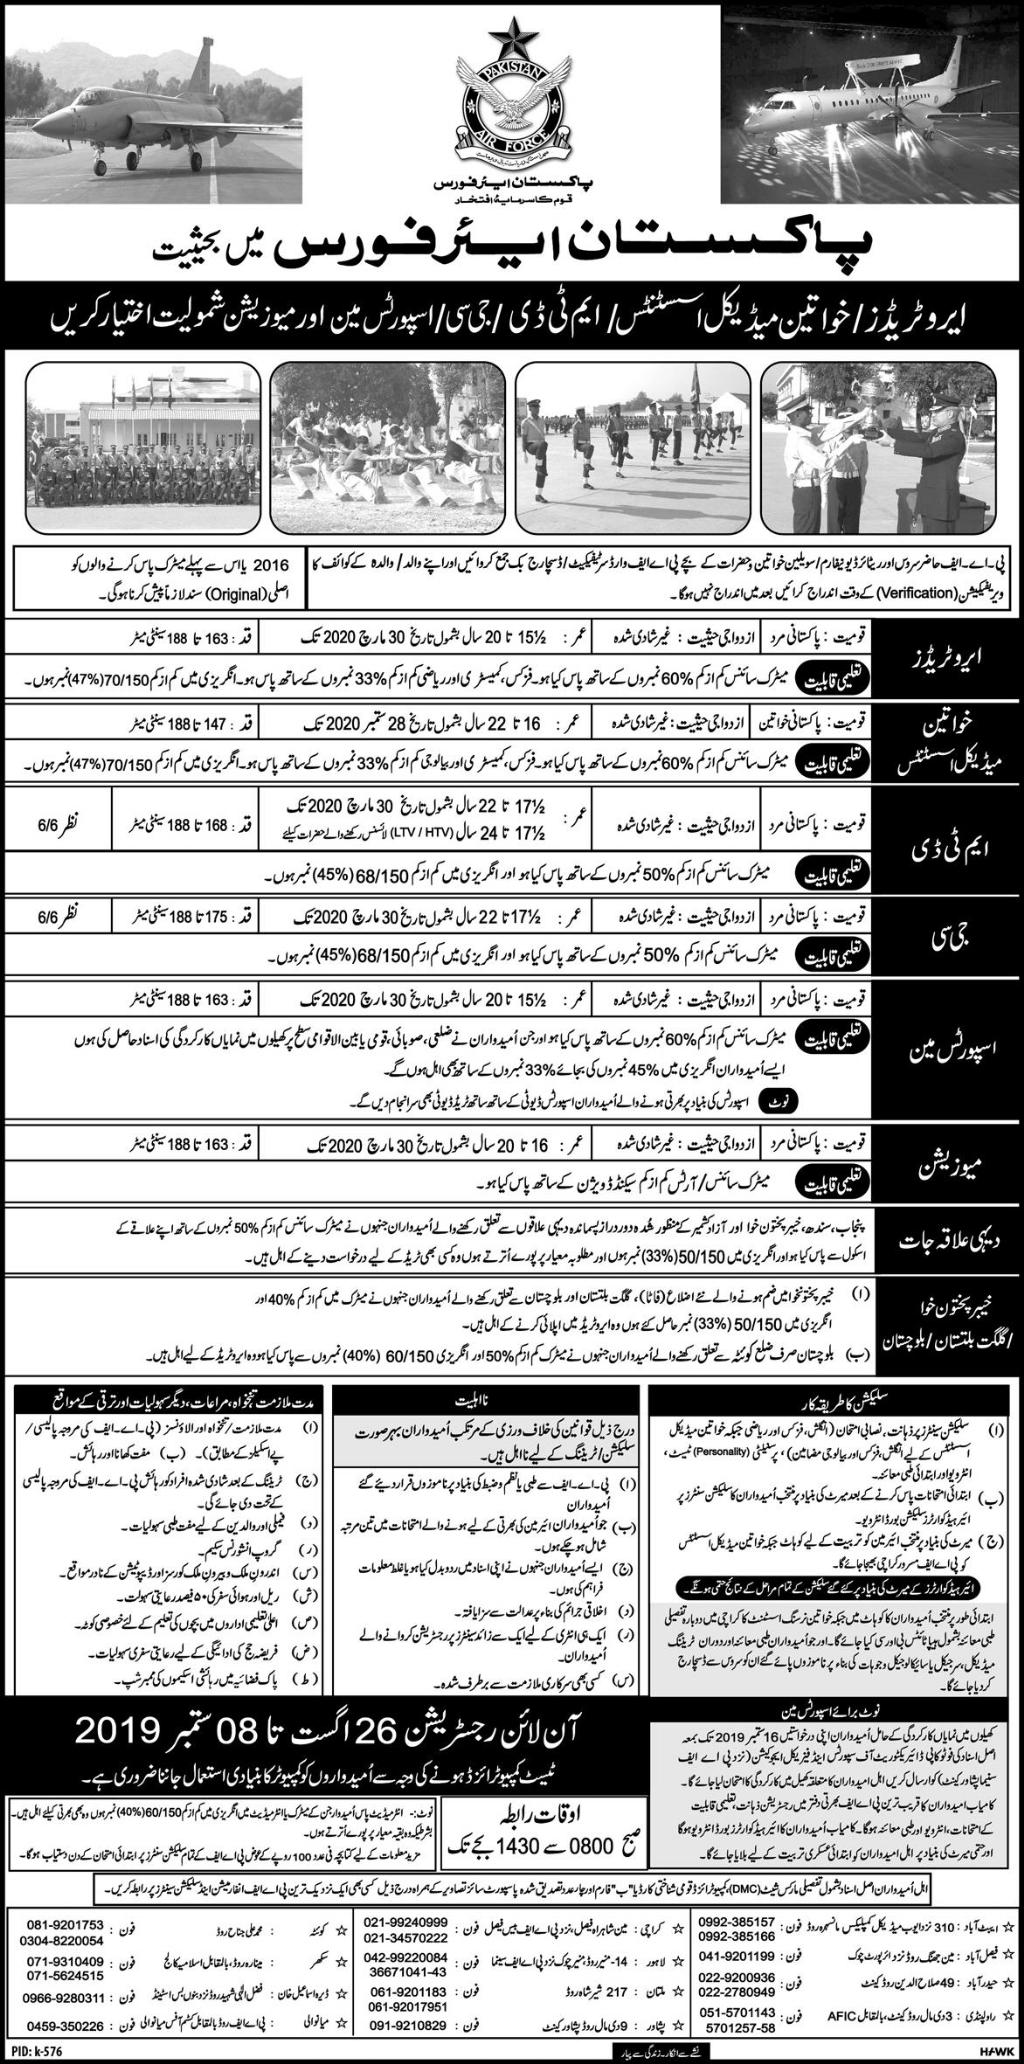 Pakistan Air Force (PAF) Jobs 25 August 2019 - Online